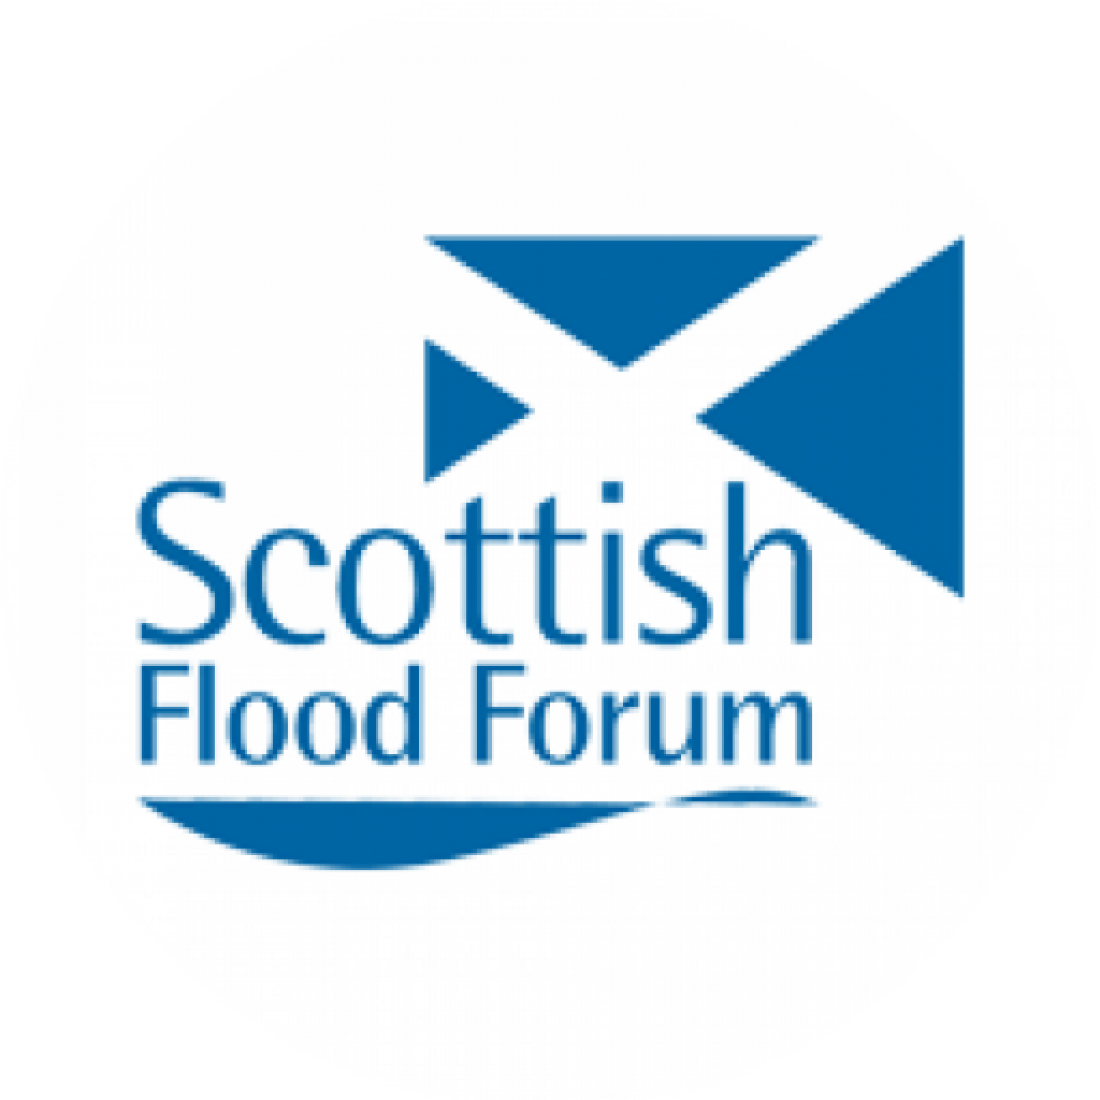 Scottish Flood Forum